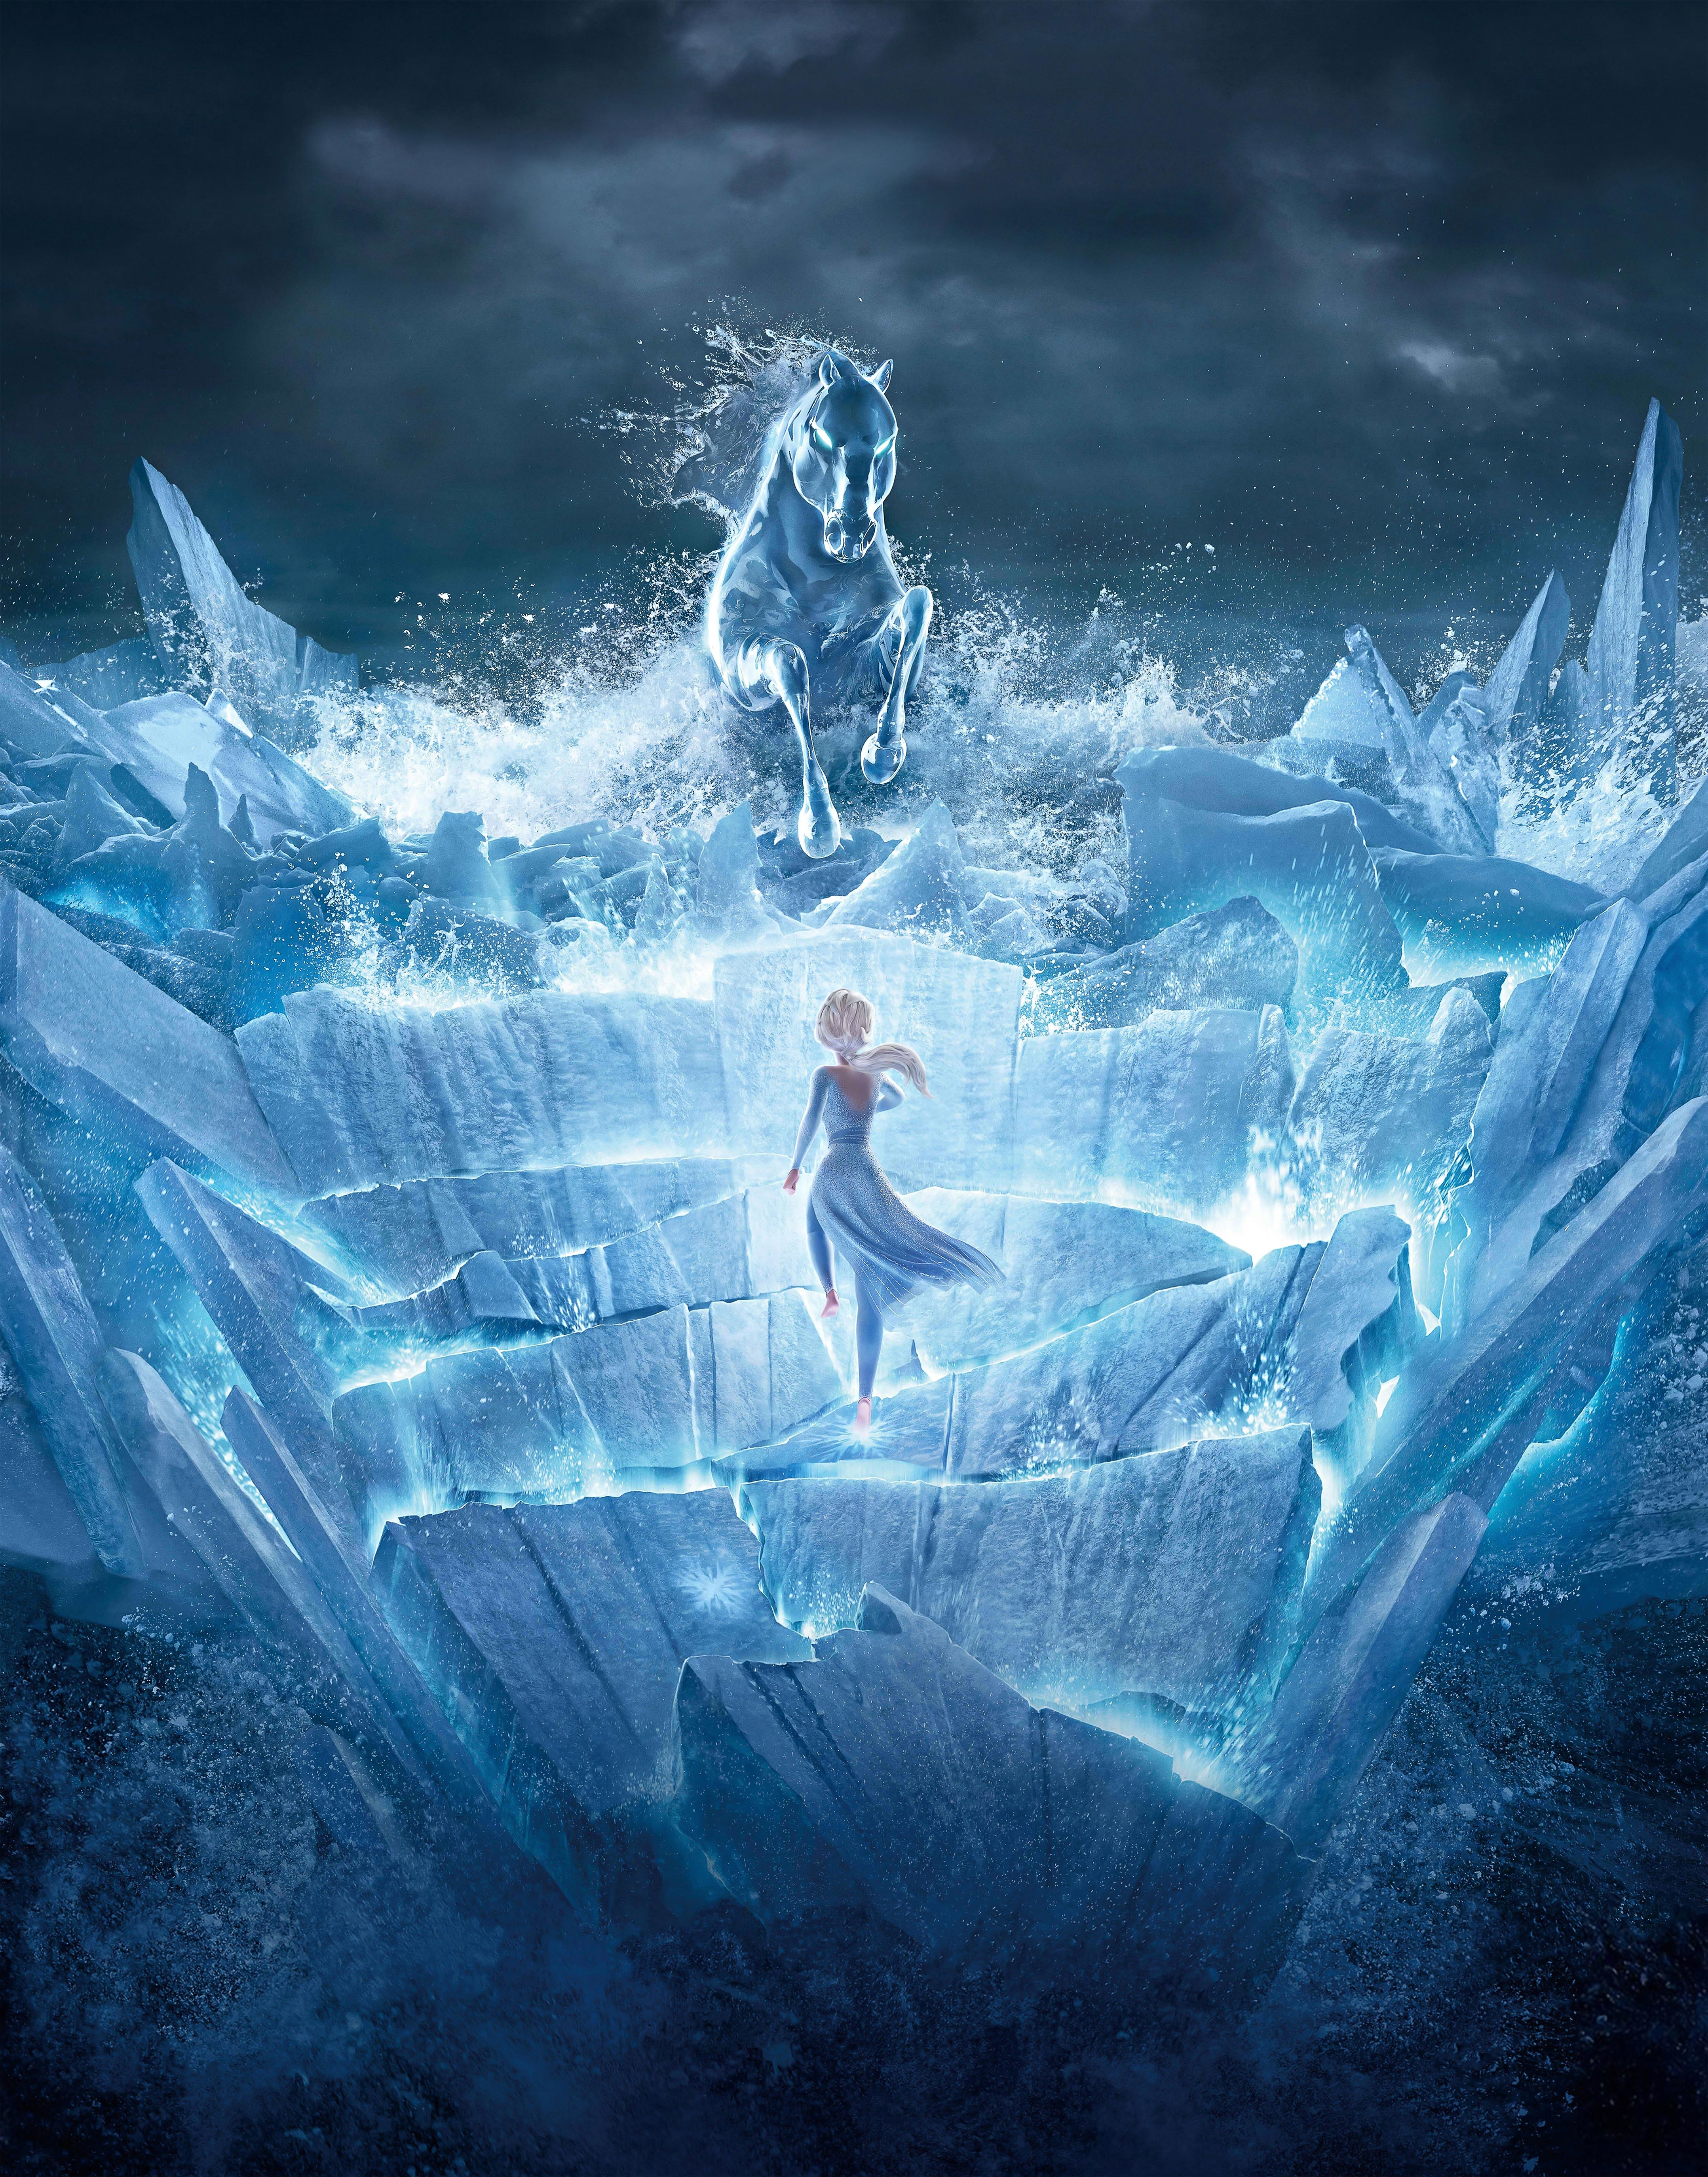 New Frozen 2 Wallpaper, HD Movies 4K Wallpapers, Images ...